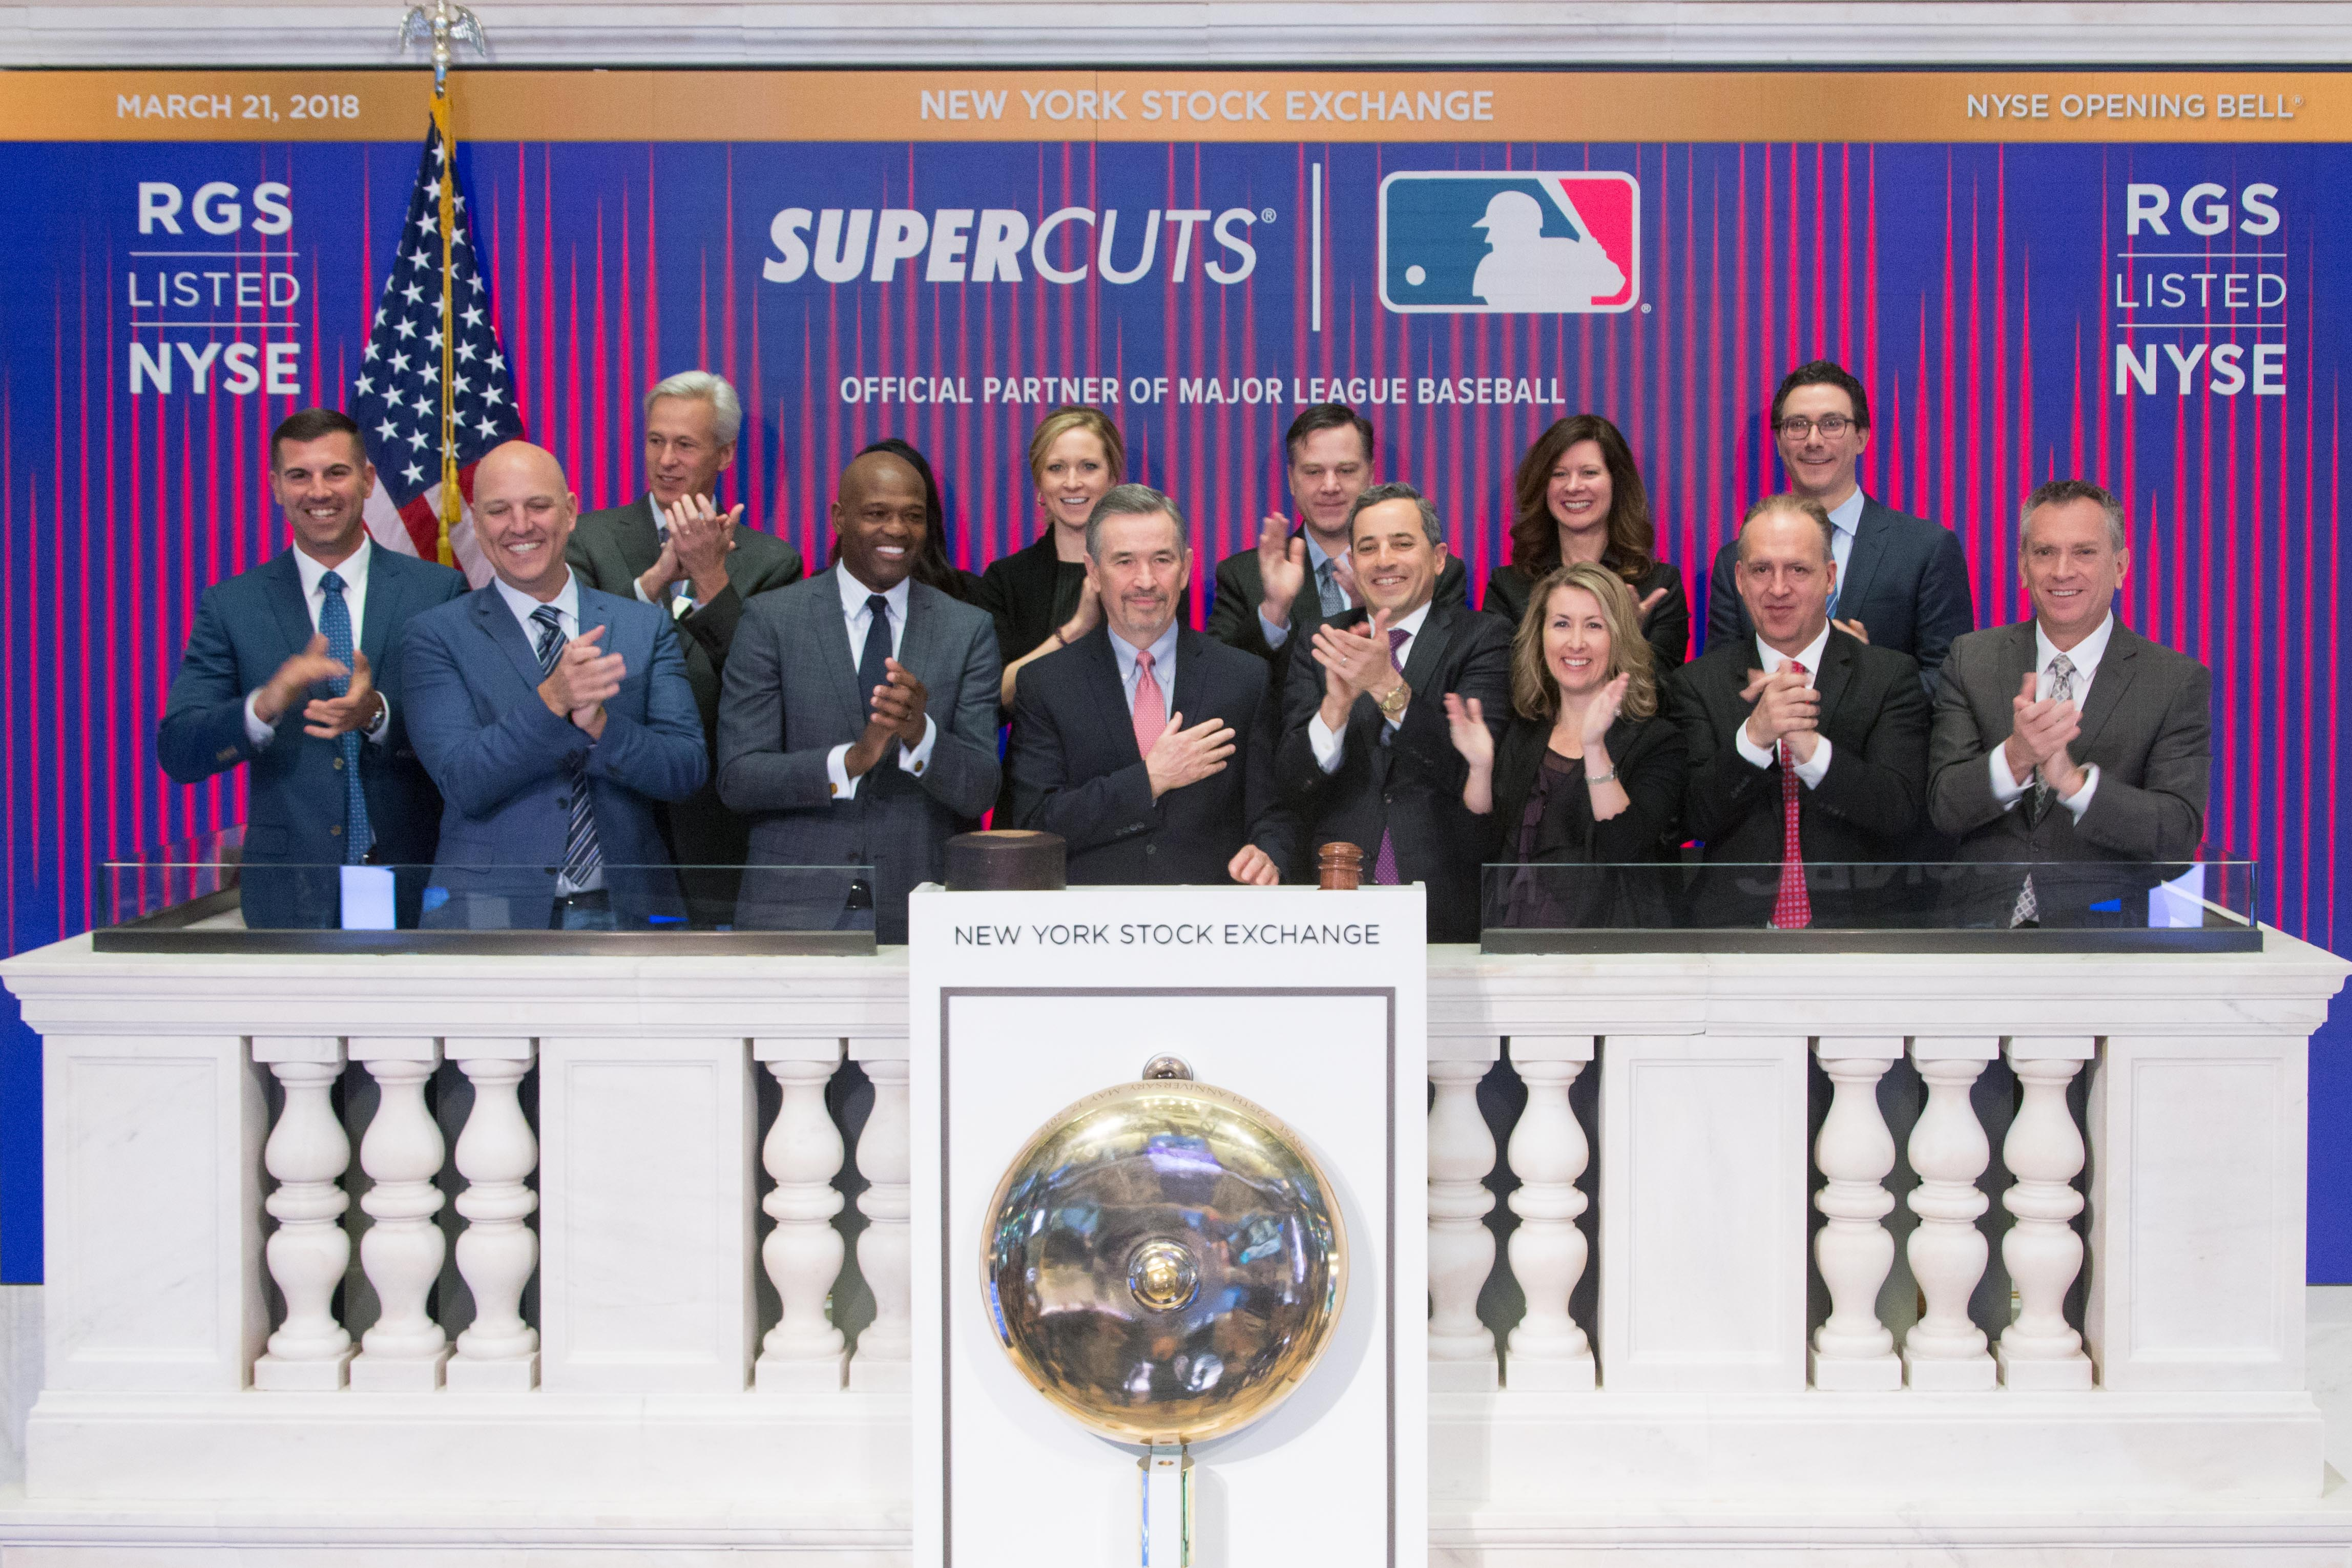 Supercuts MLB Partnership NYSE